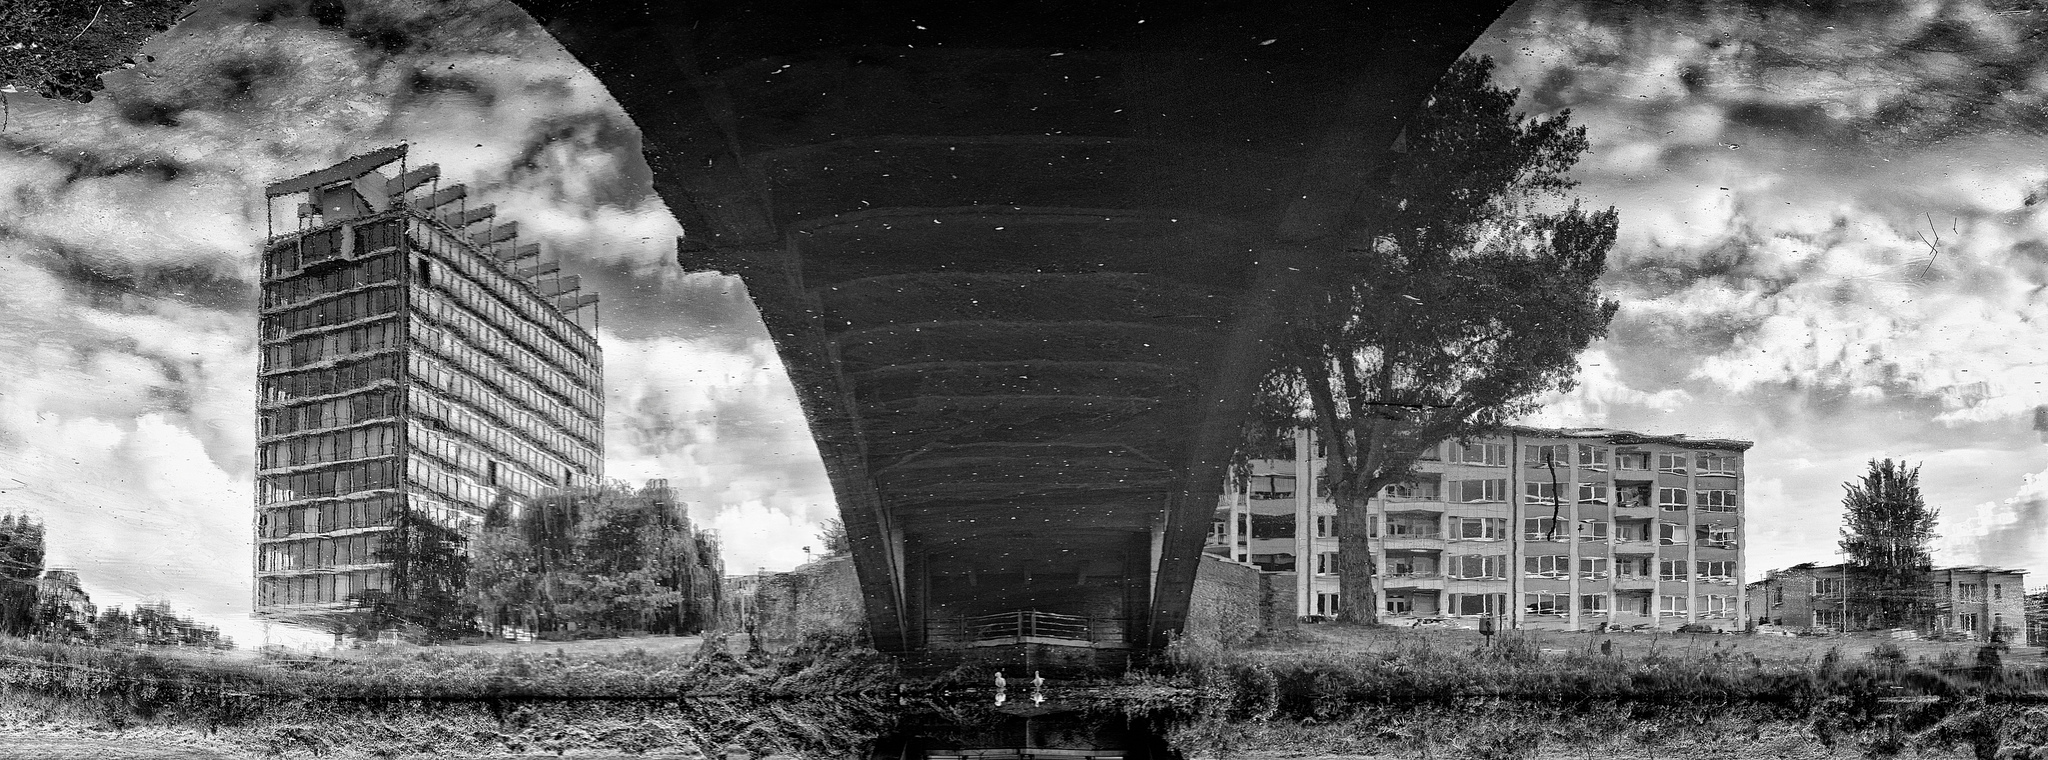 A reflection. Under the bridge, there's dirty water